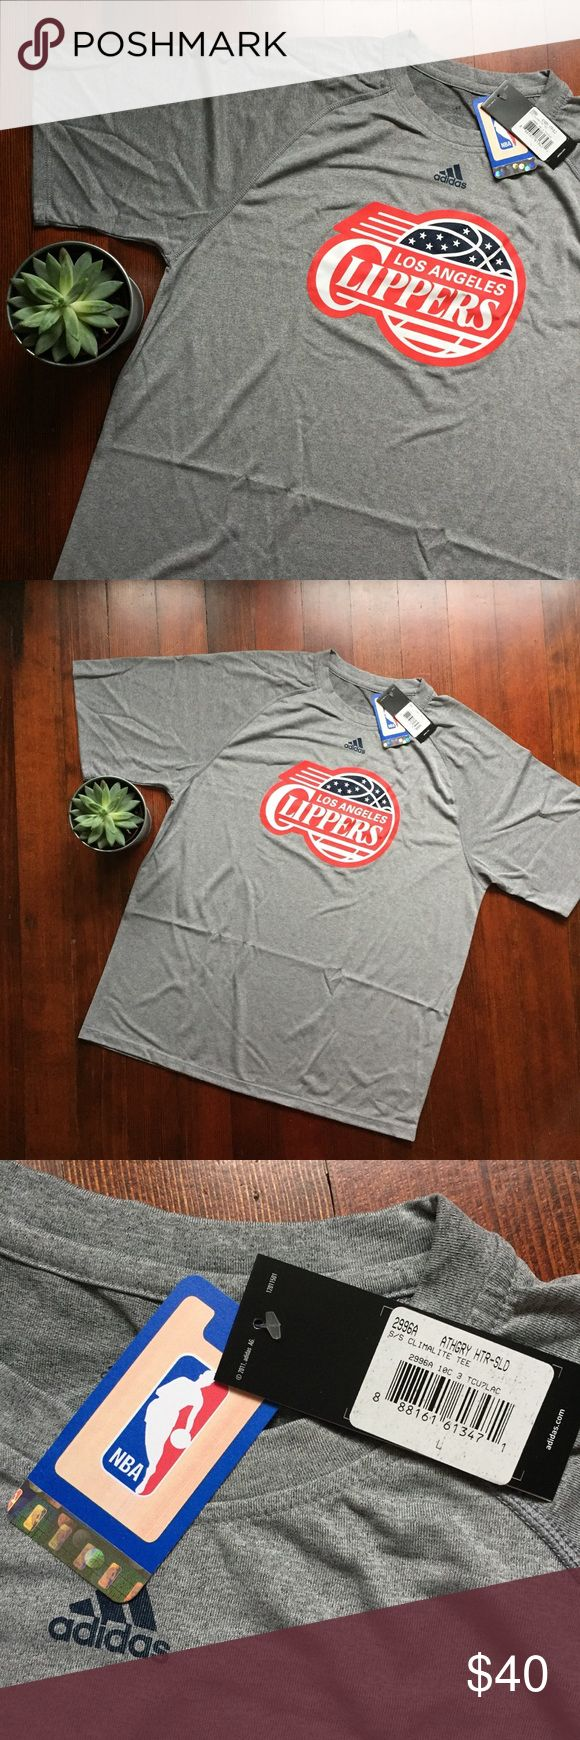 NWT LA Los Angeles Clippers NBA Basketball Tshirt This is a brand new with tags great adidas Tshirt. It has an LA Clippers tee. Has an athletic feel--> climalite.  🔹size- large 🔹pit to pit- 22.5 inches 🔹length- about 29 adidas Shirts Tees - Short Sleeve